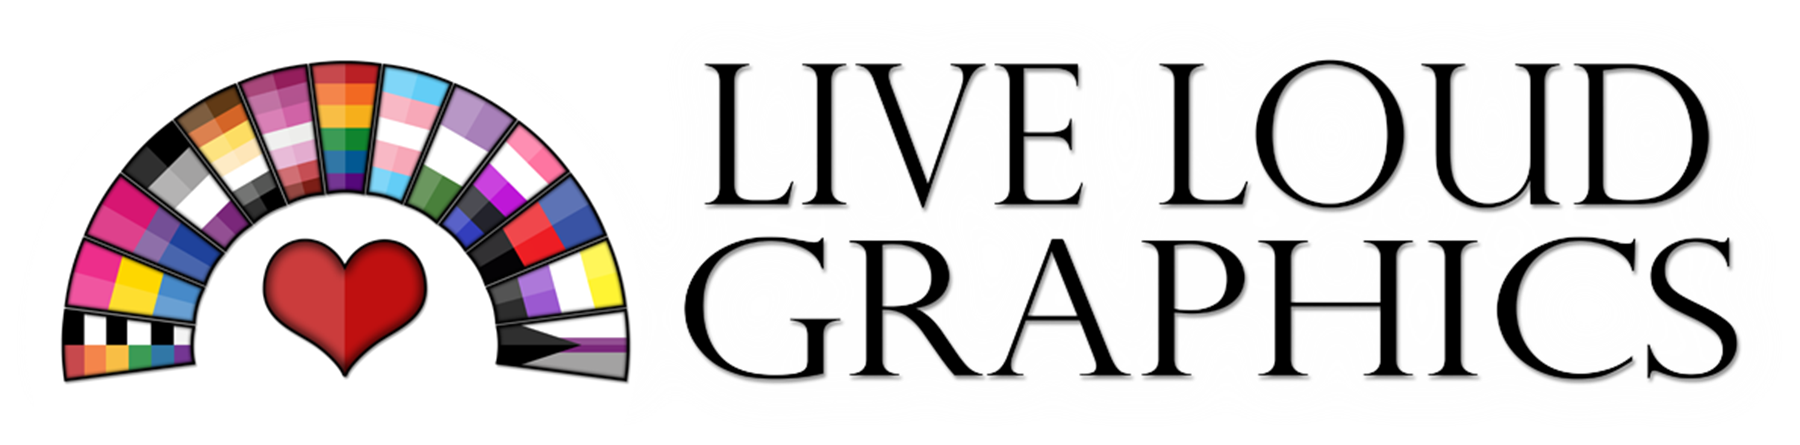 Live Loud Graphics Banner